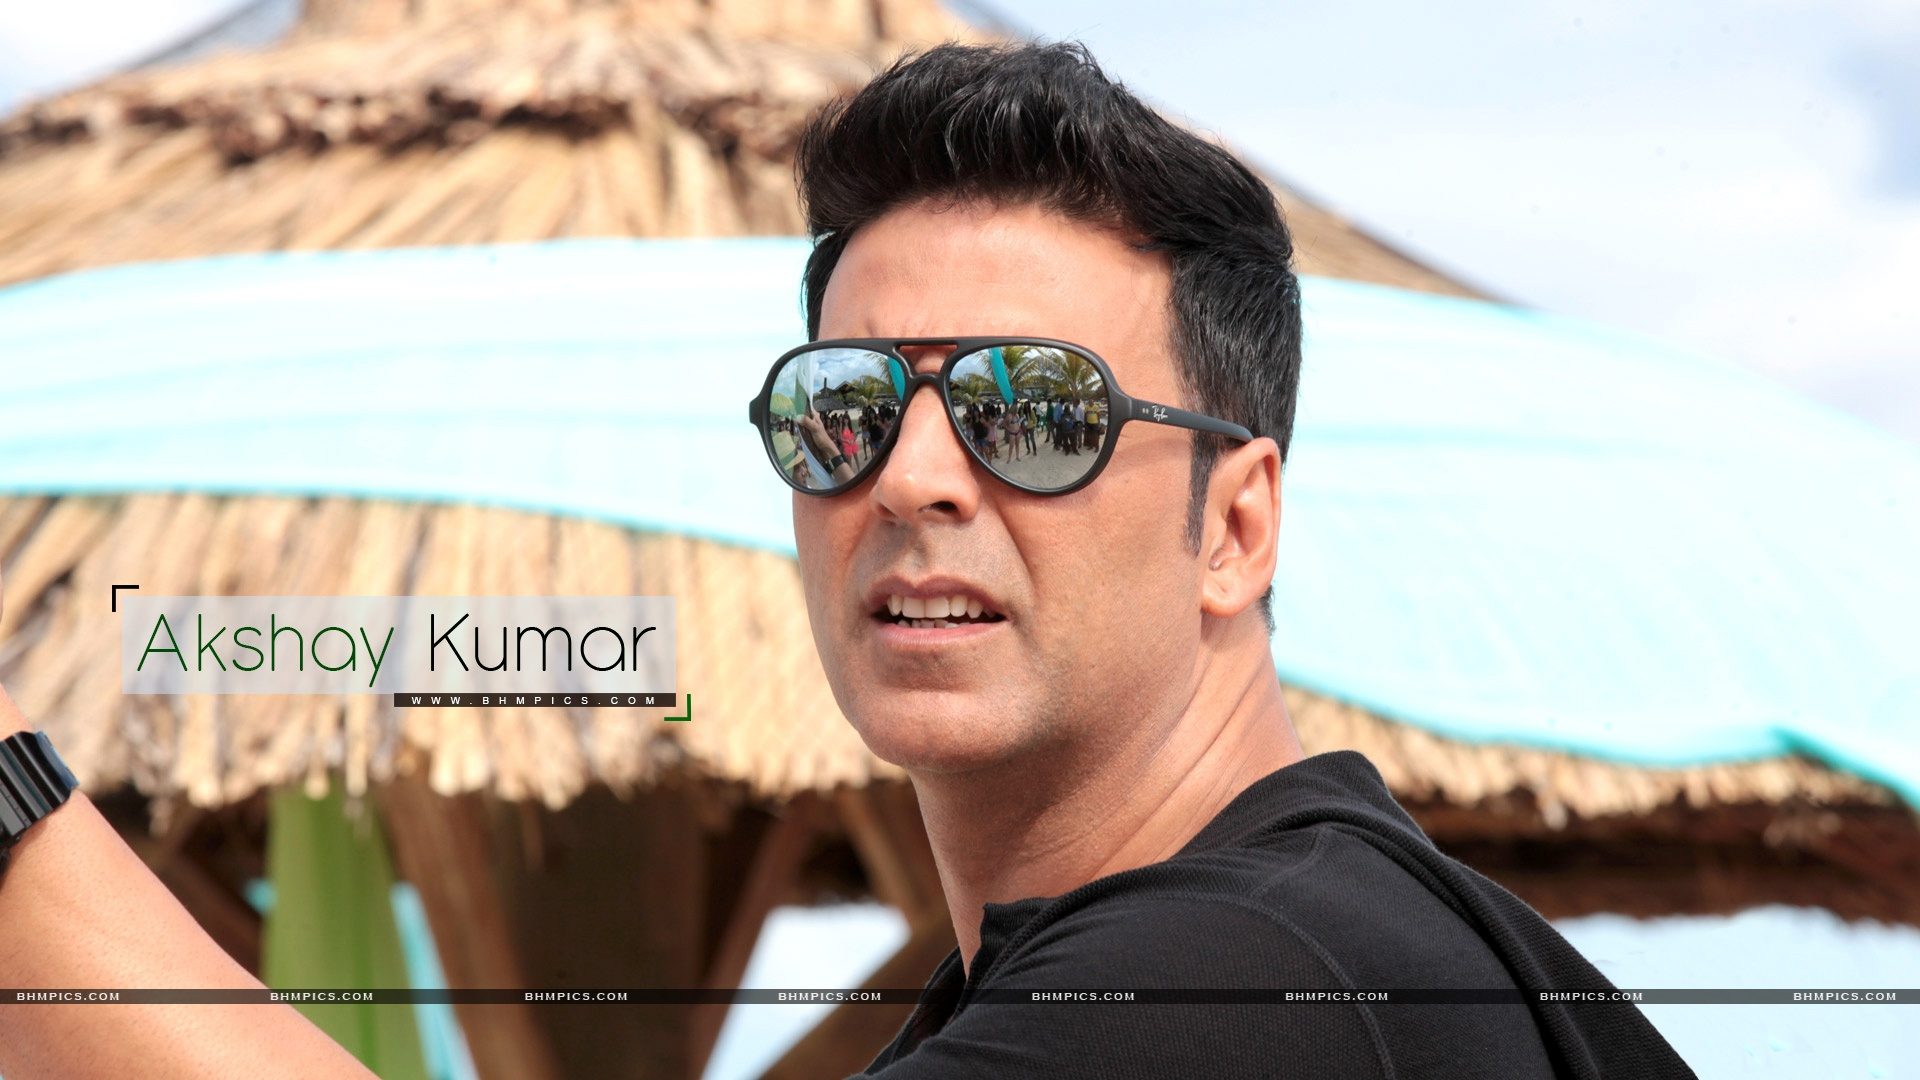 50+ akshay kumar images, photos, pics & hd wallpapers download.